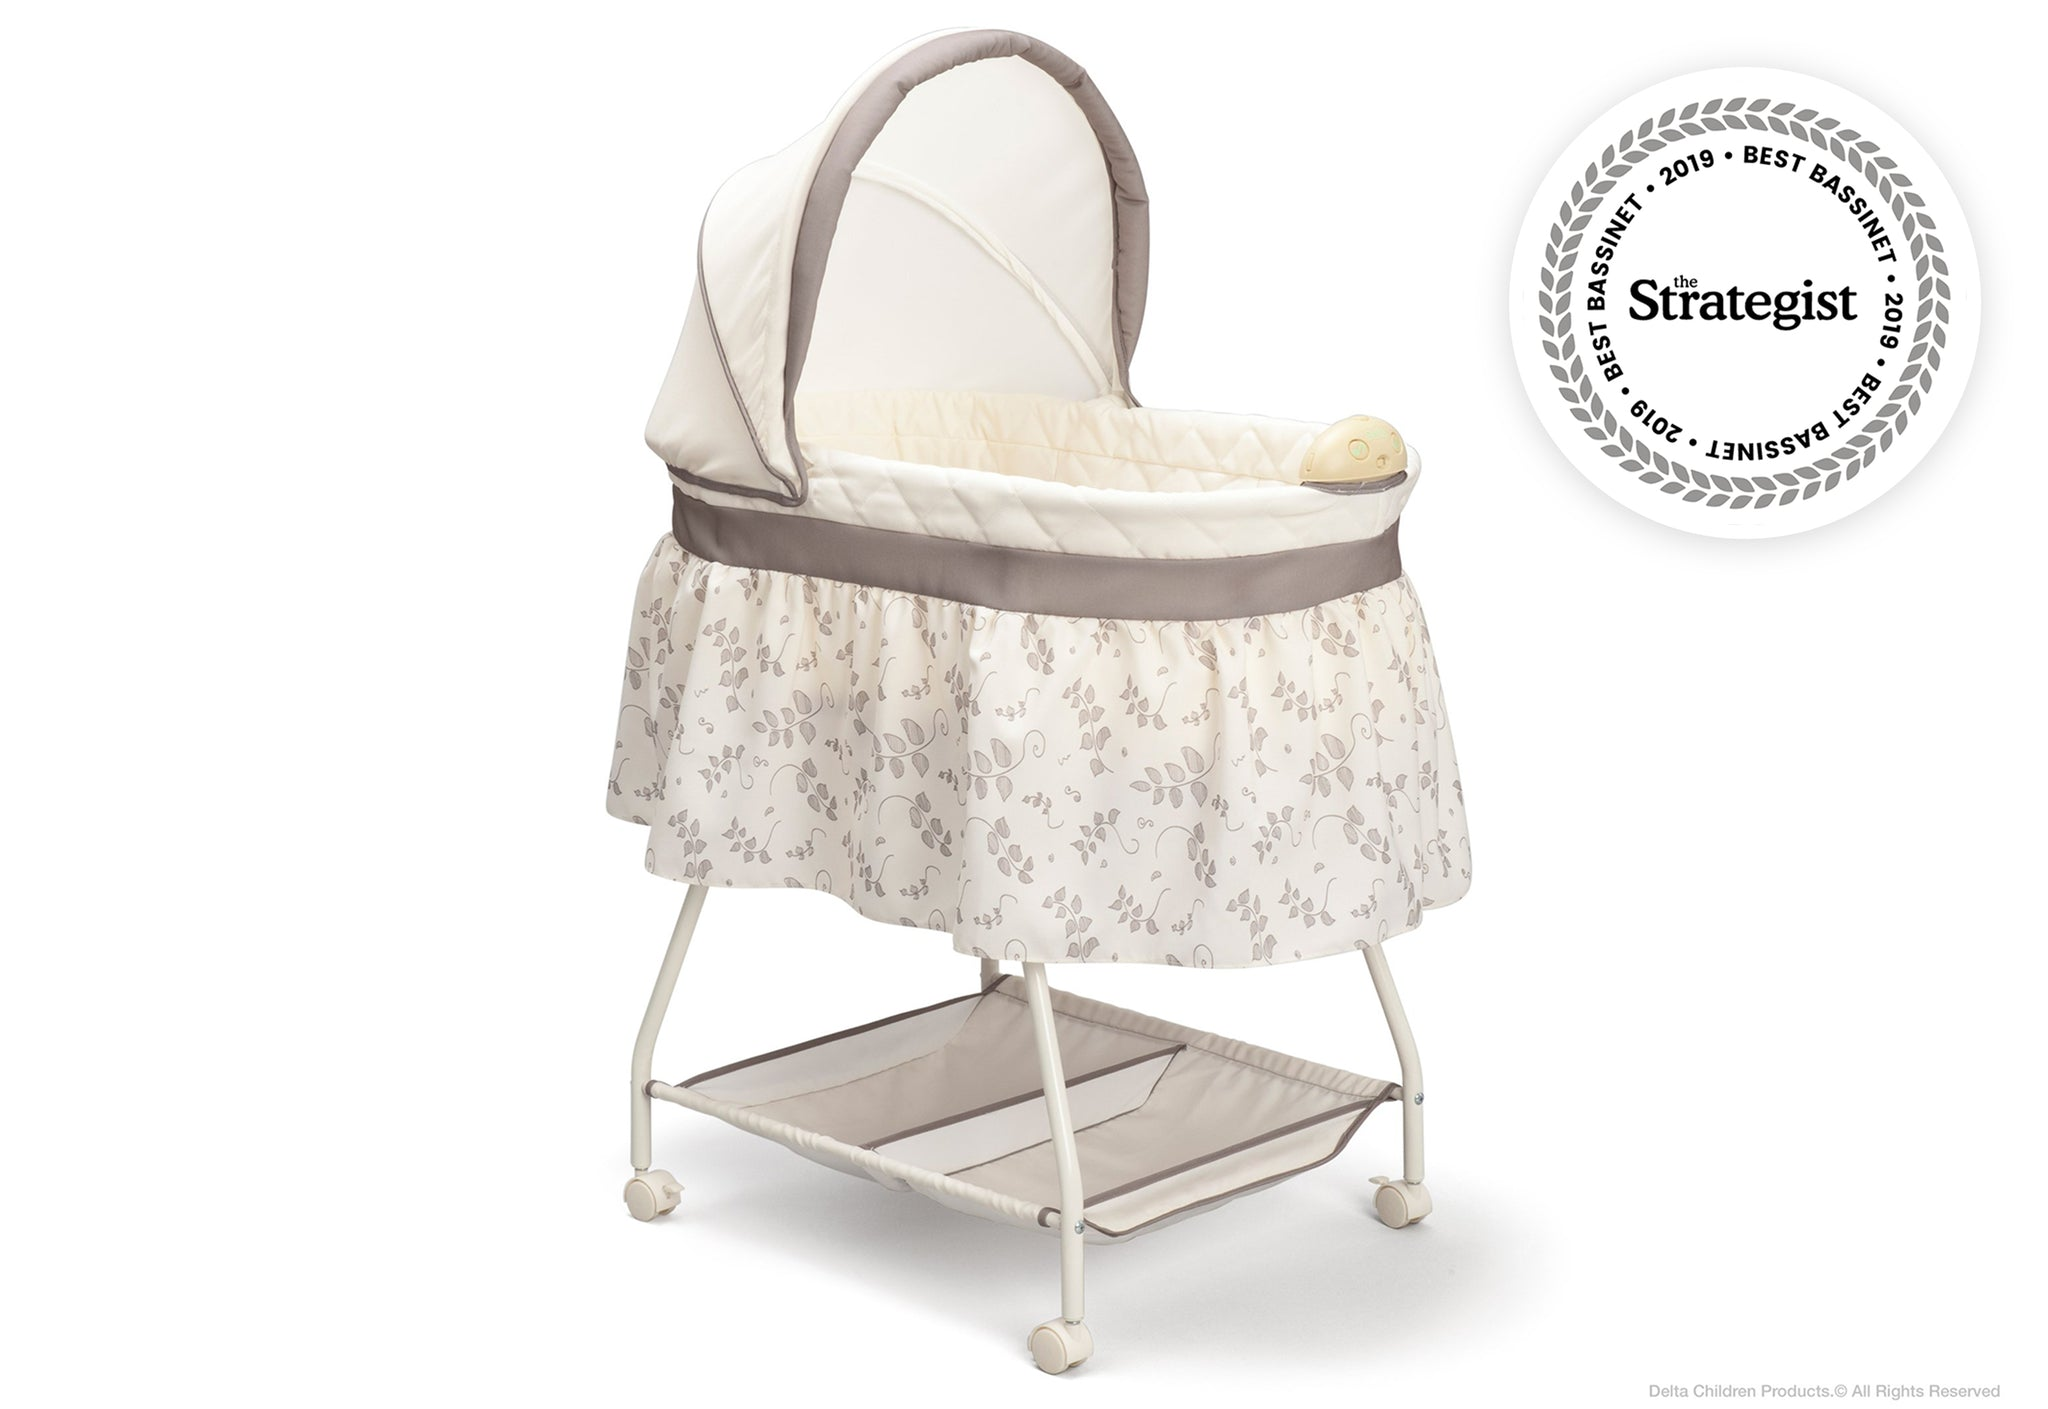 Delta Children Falling Leaves (138) Deluxe Sweet Beginnings Bassinet (25021) Badge Siloå